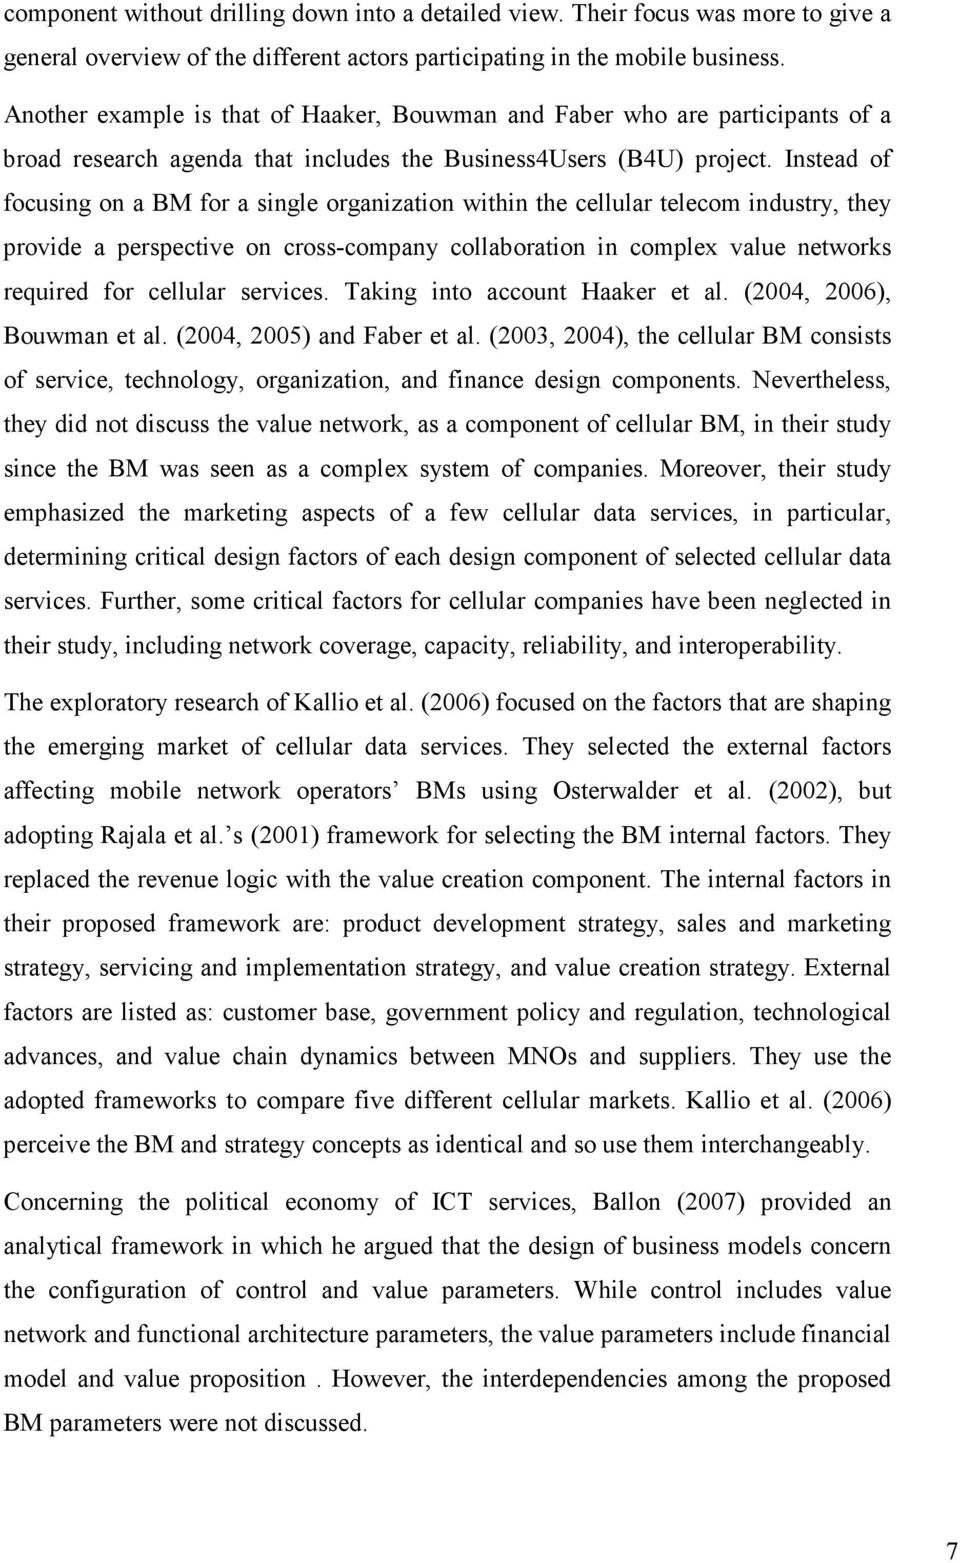 Instead of focusing on a BM for a single organization within the cellular telecom industry, they provide a perspective on cross-company collaboration in complex value networks required for cellular